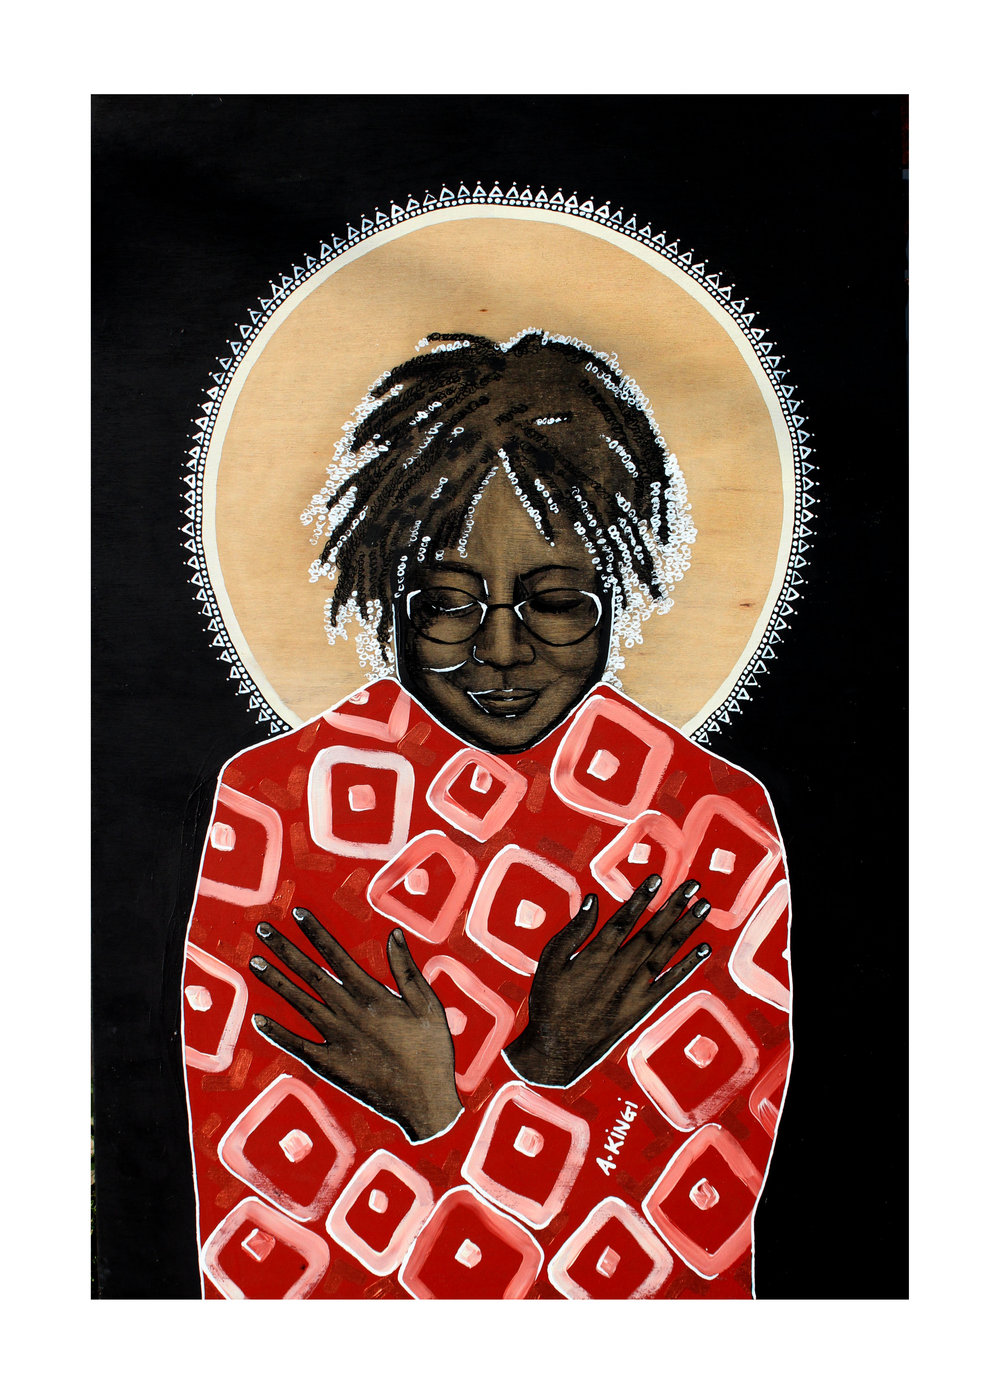 Amber Kingi Alice Walker, a Heroic Example of Individualism and Nonconformity, 2016 Acrylic and charcoal on plywood 90 x 60 cm Reserve Price: Coming Soon